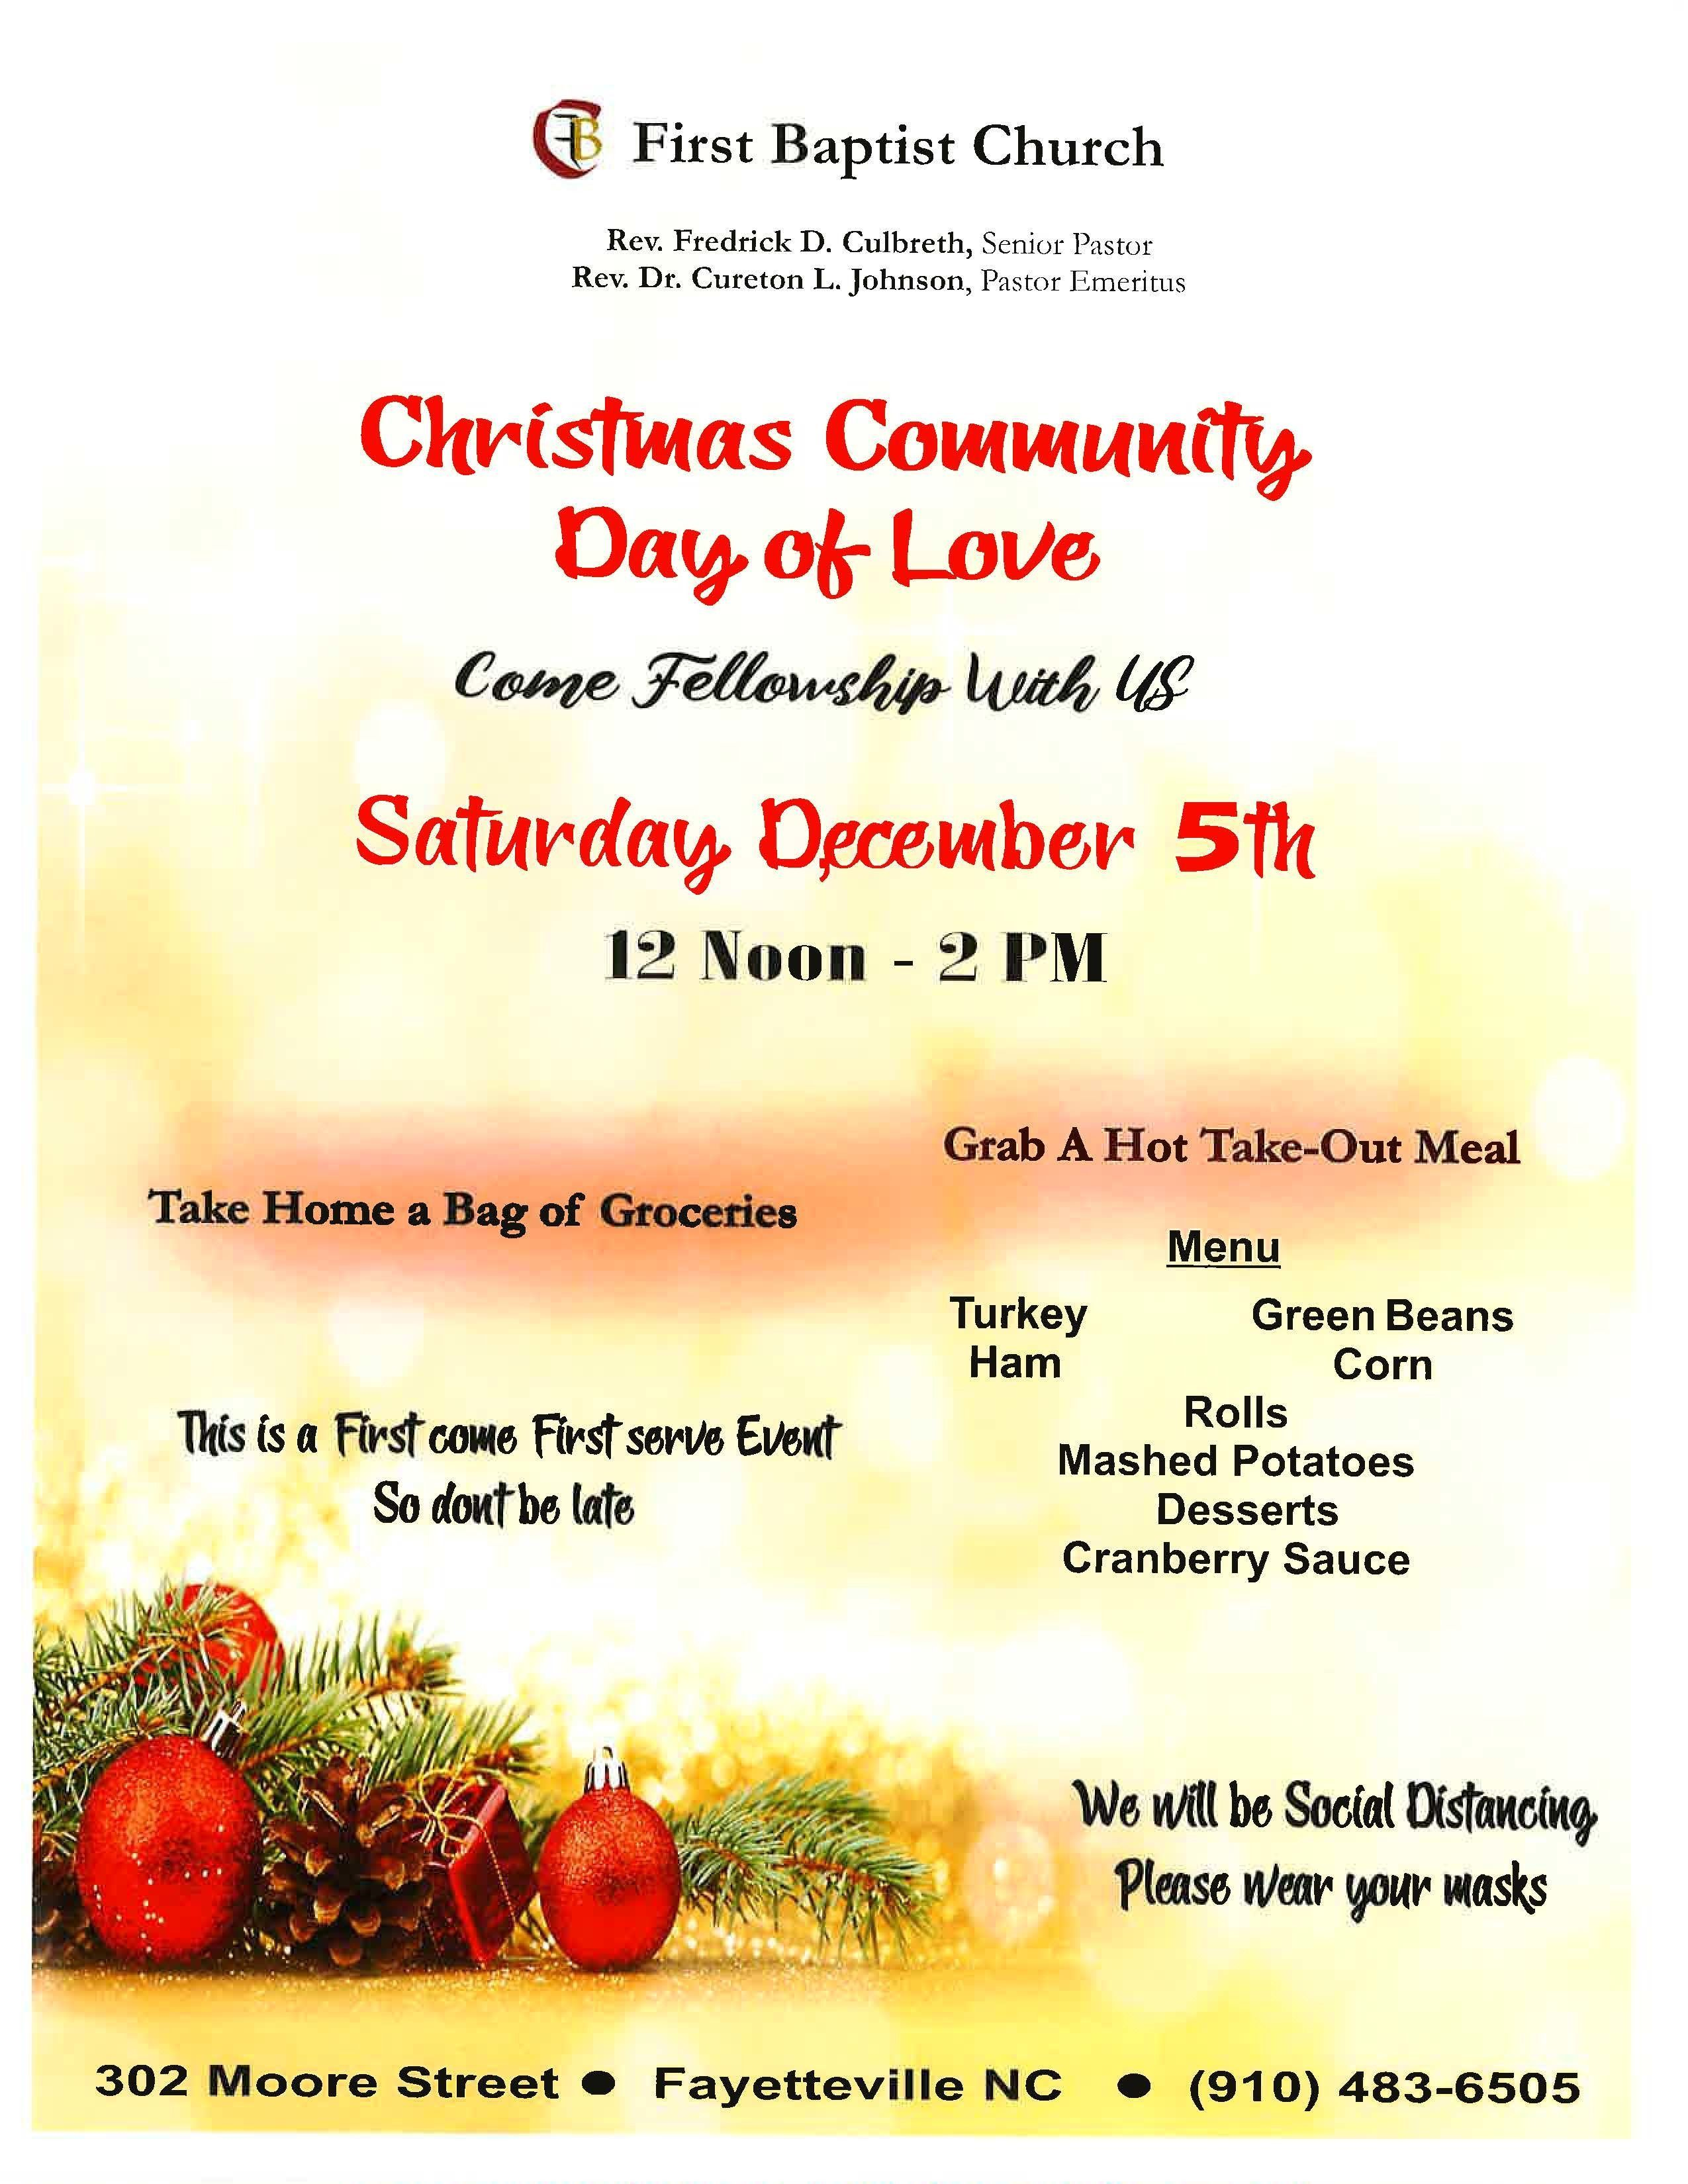 Christmas Community Day of Love